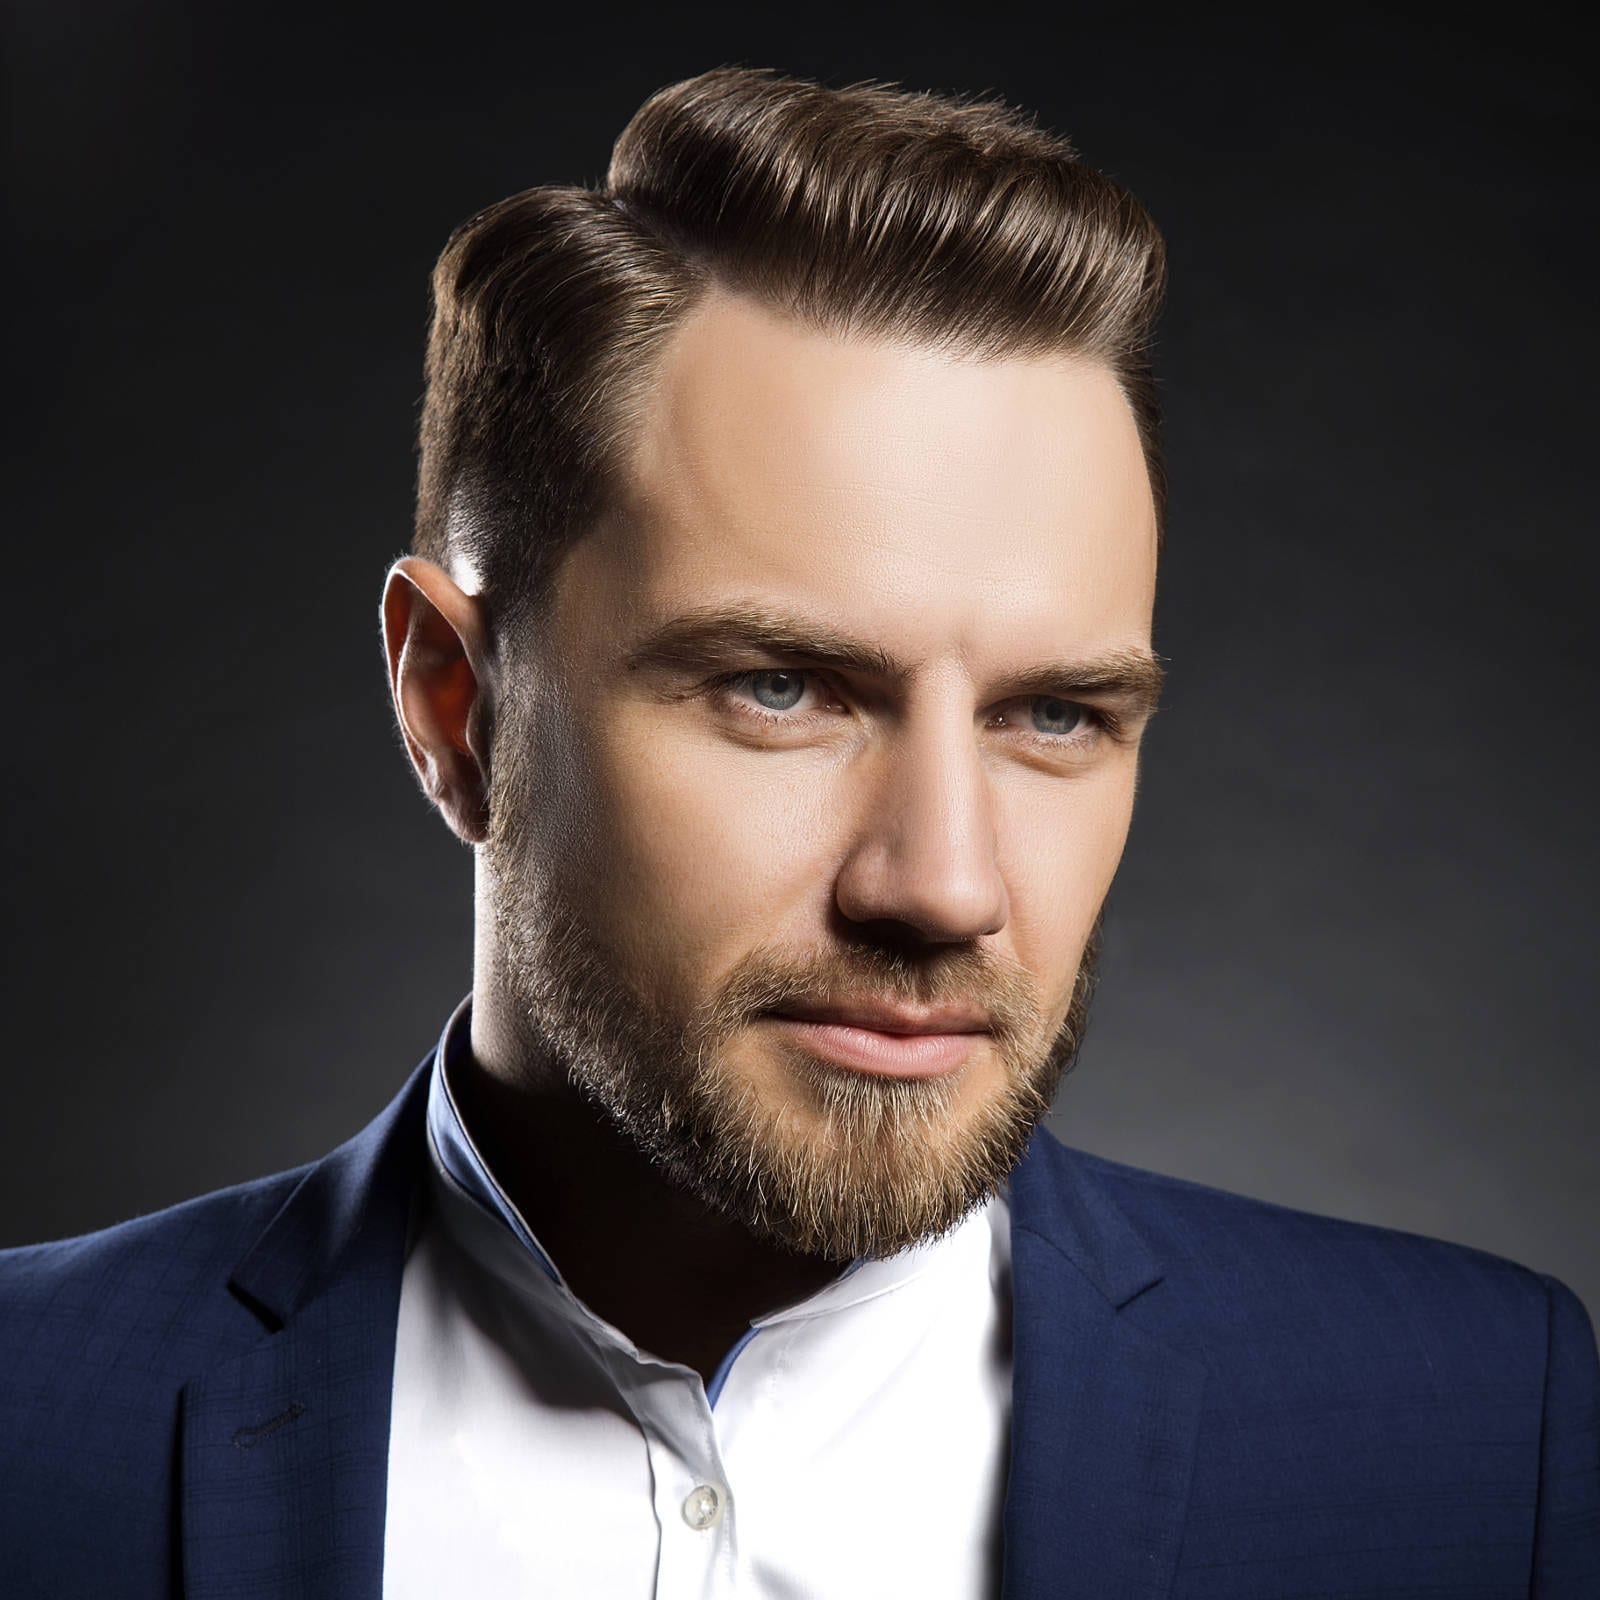 The Side Part Haircut: A Classic Style For Gentlemen